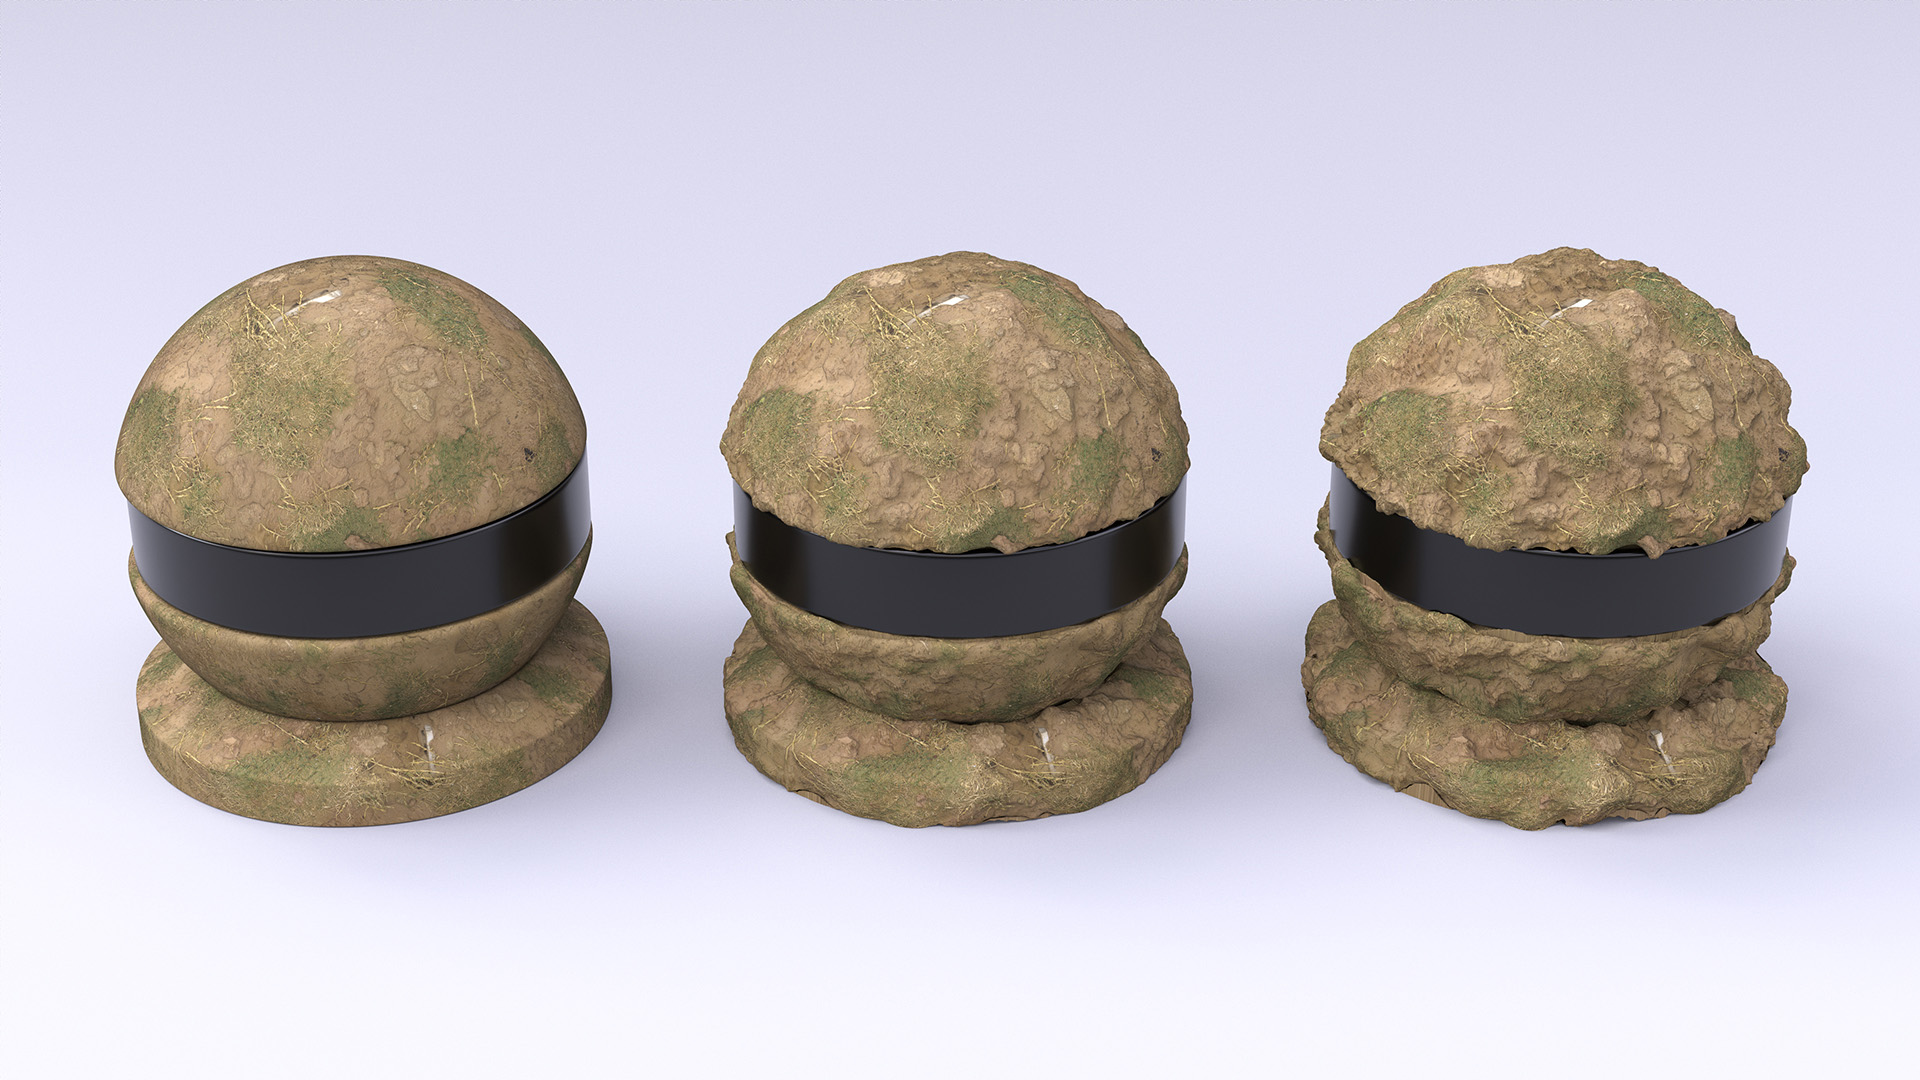 Figure 4: Dirt shaderballs with displacement scales of 0.0, 0.5, and 1.0, going from left to right.